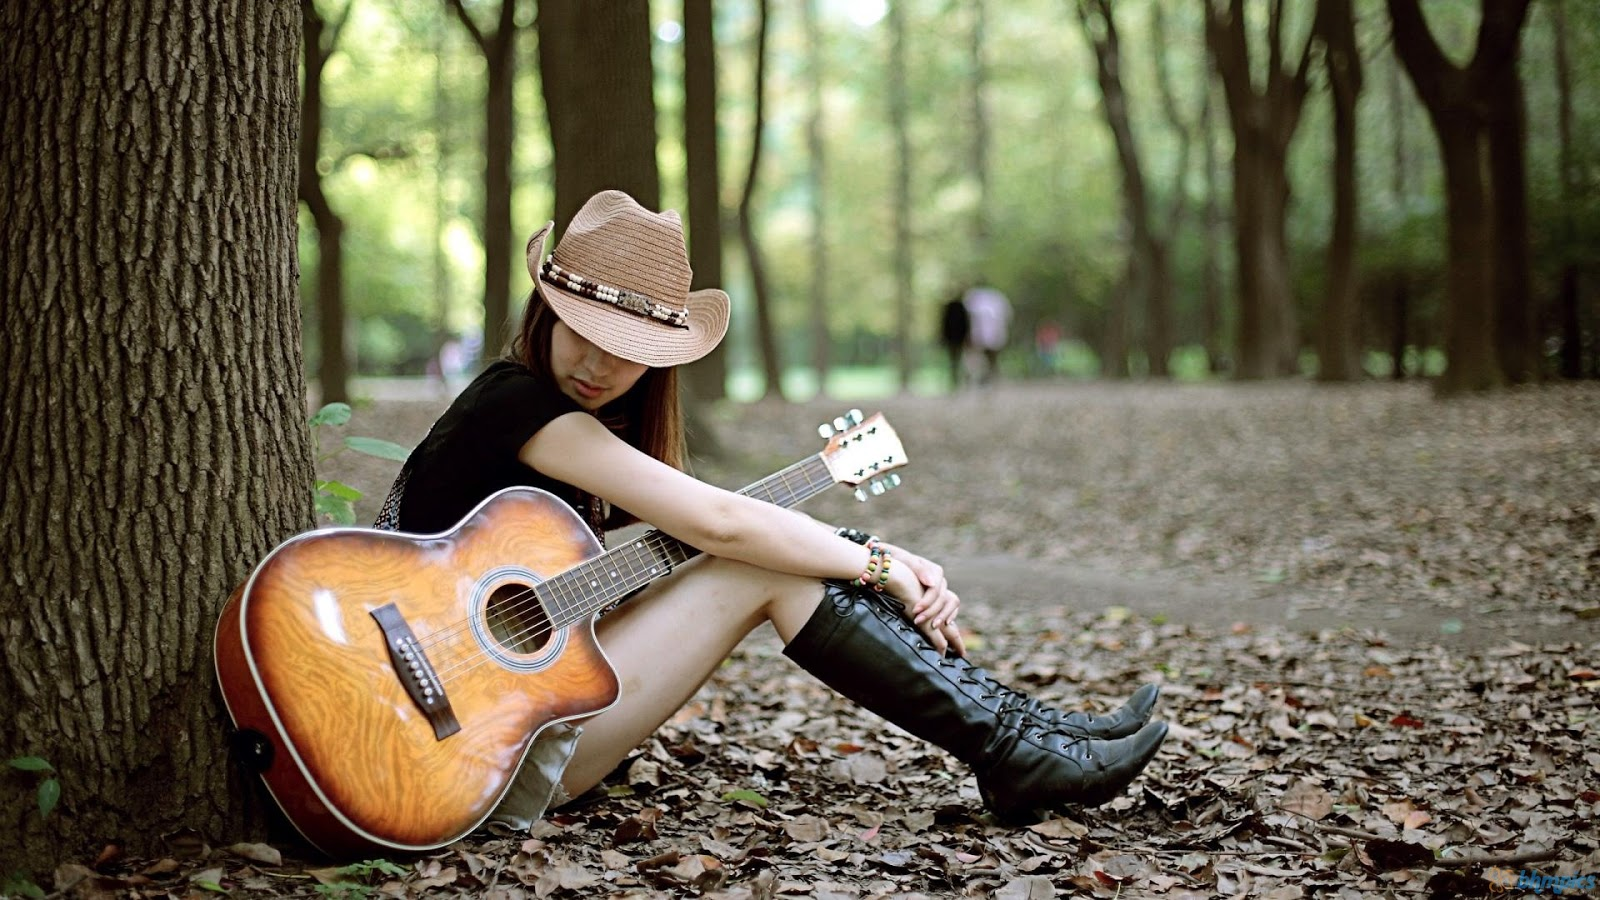 girl with guitar hd wallpapers. Black Bedroom Furniture Sets. Home Design Ideas